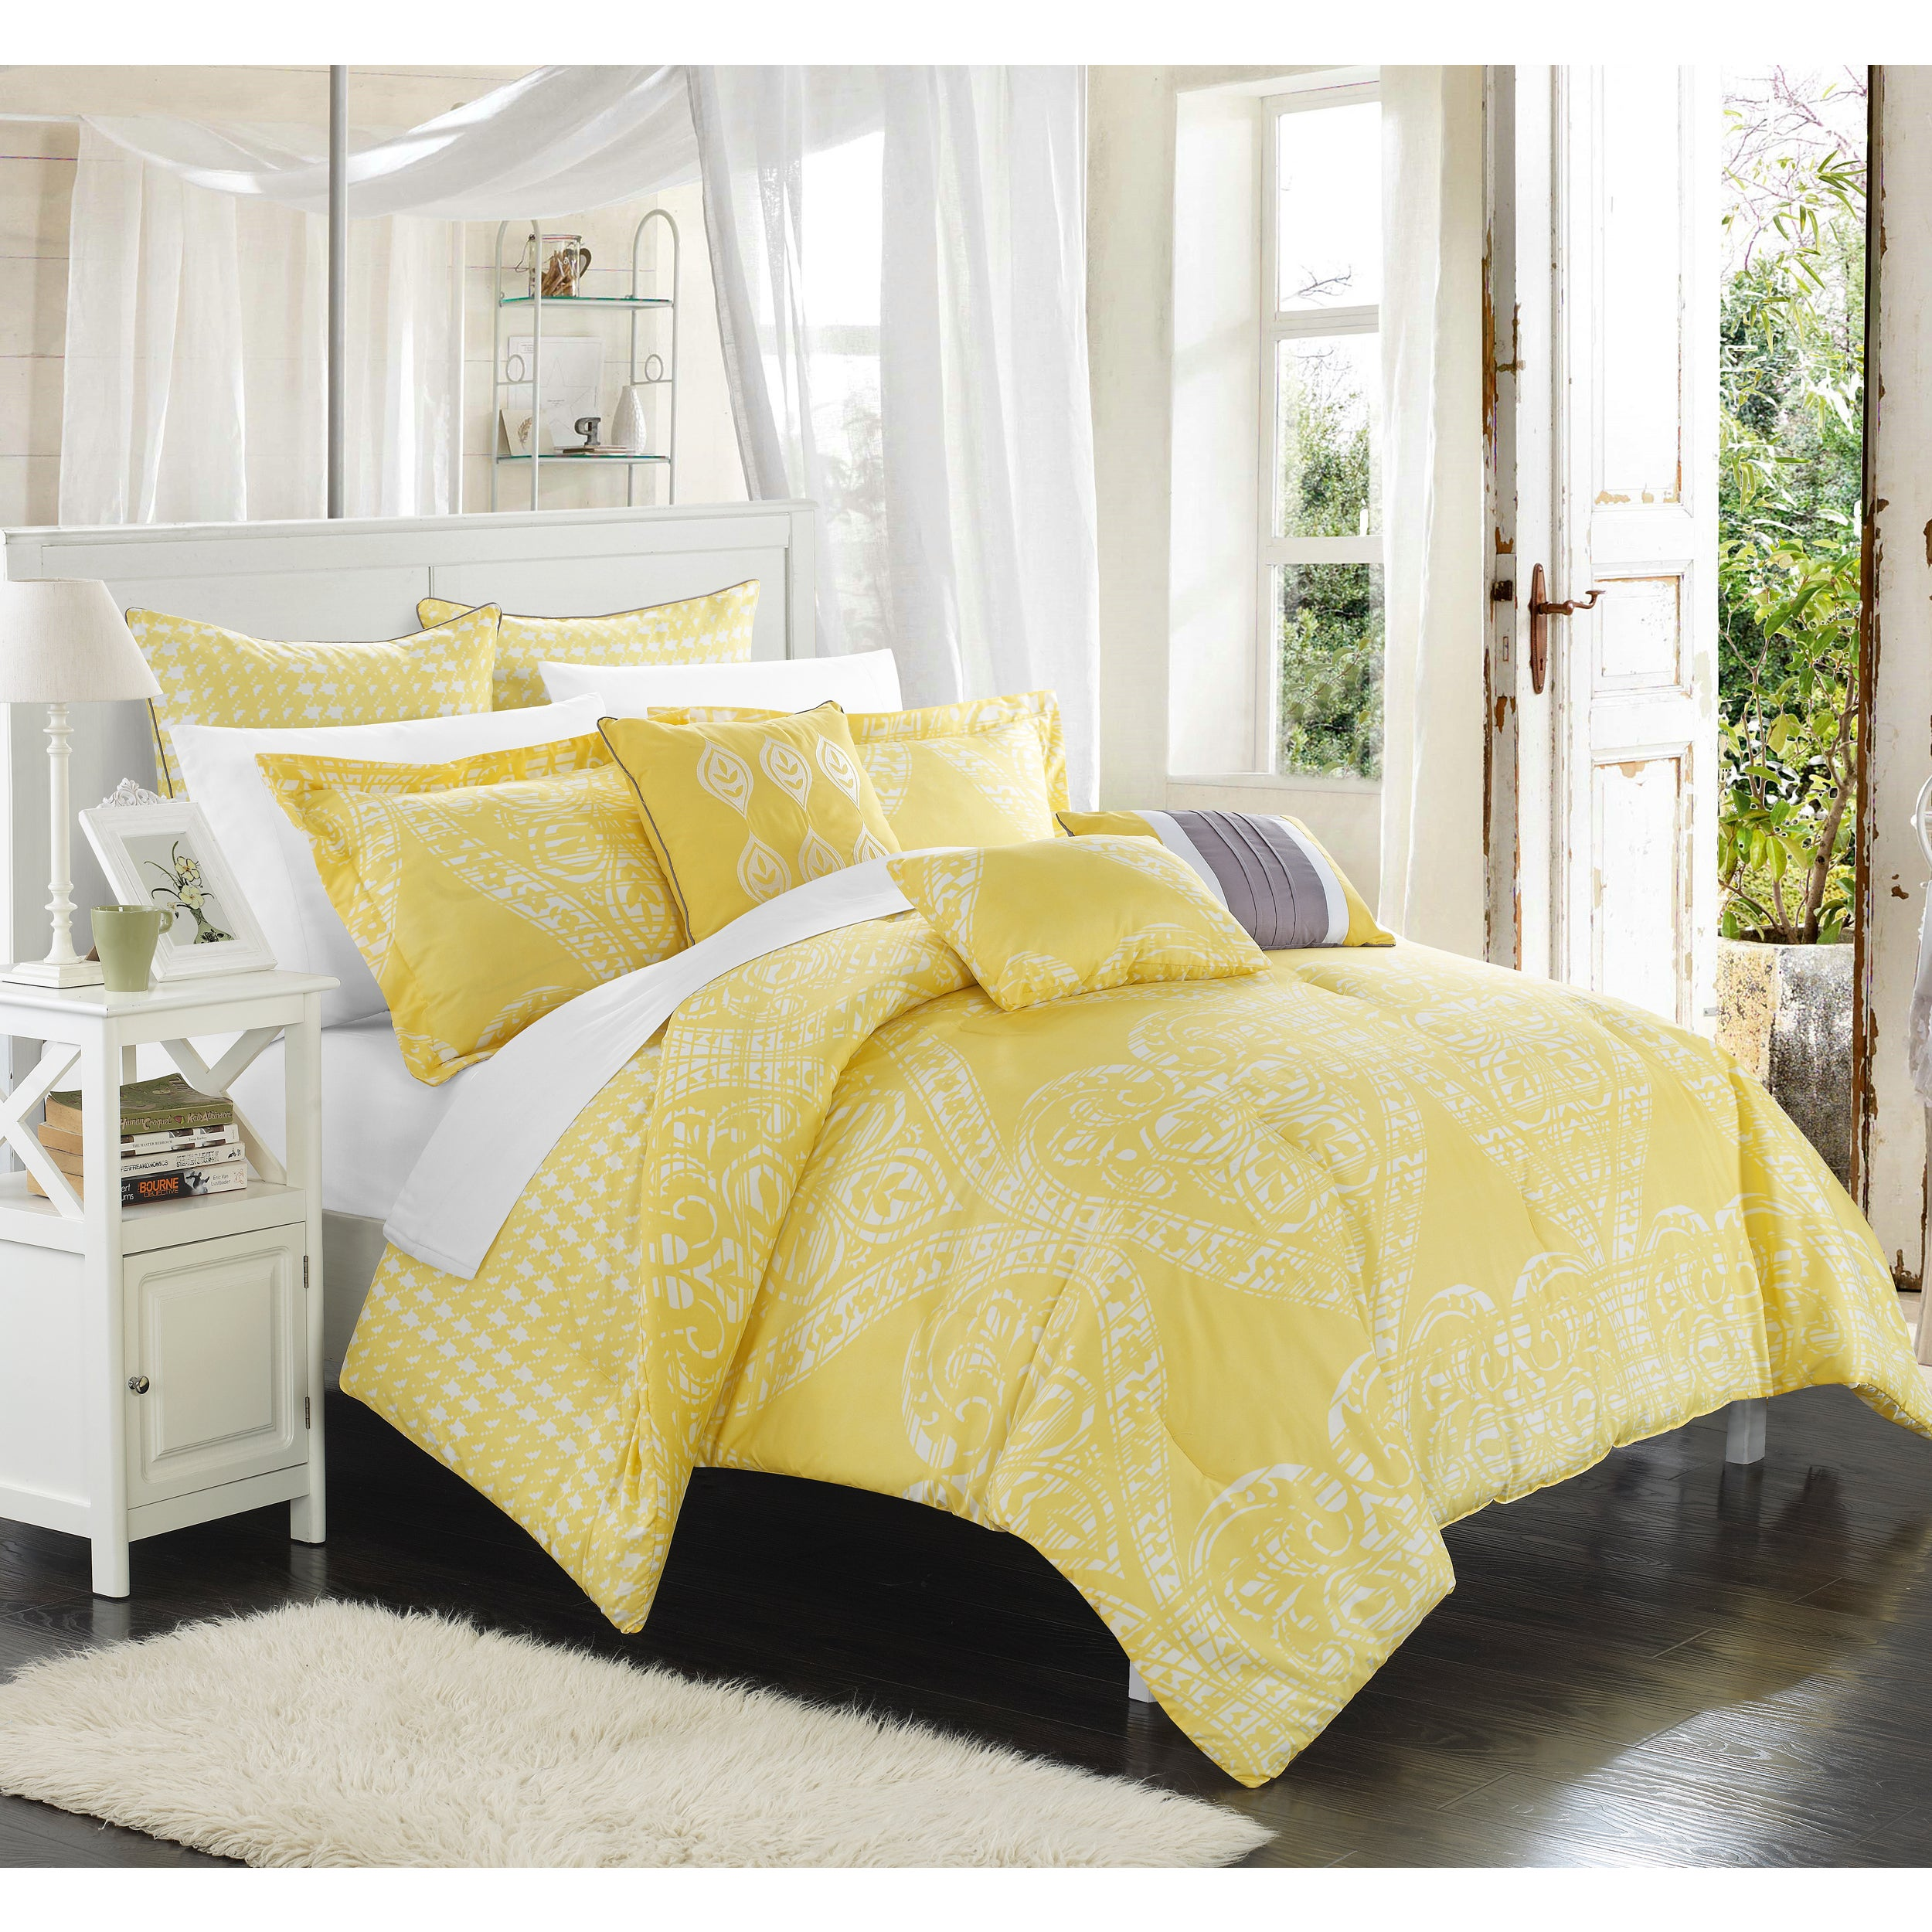 Shop Chic Home Perugia Yellow Oversized Reversible 8-piece